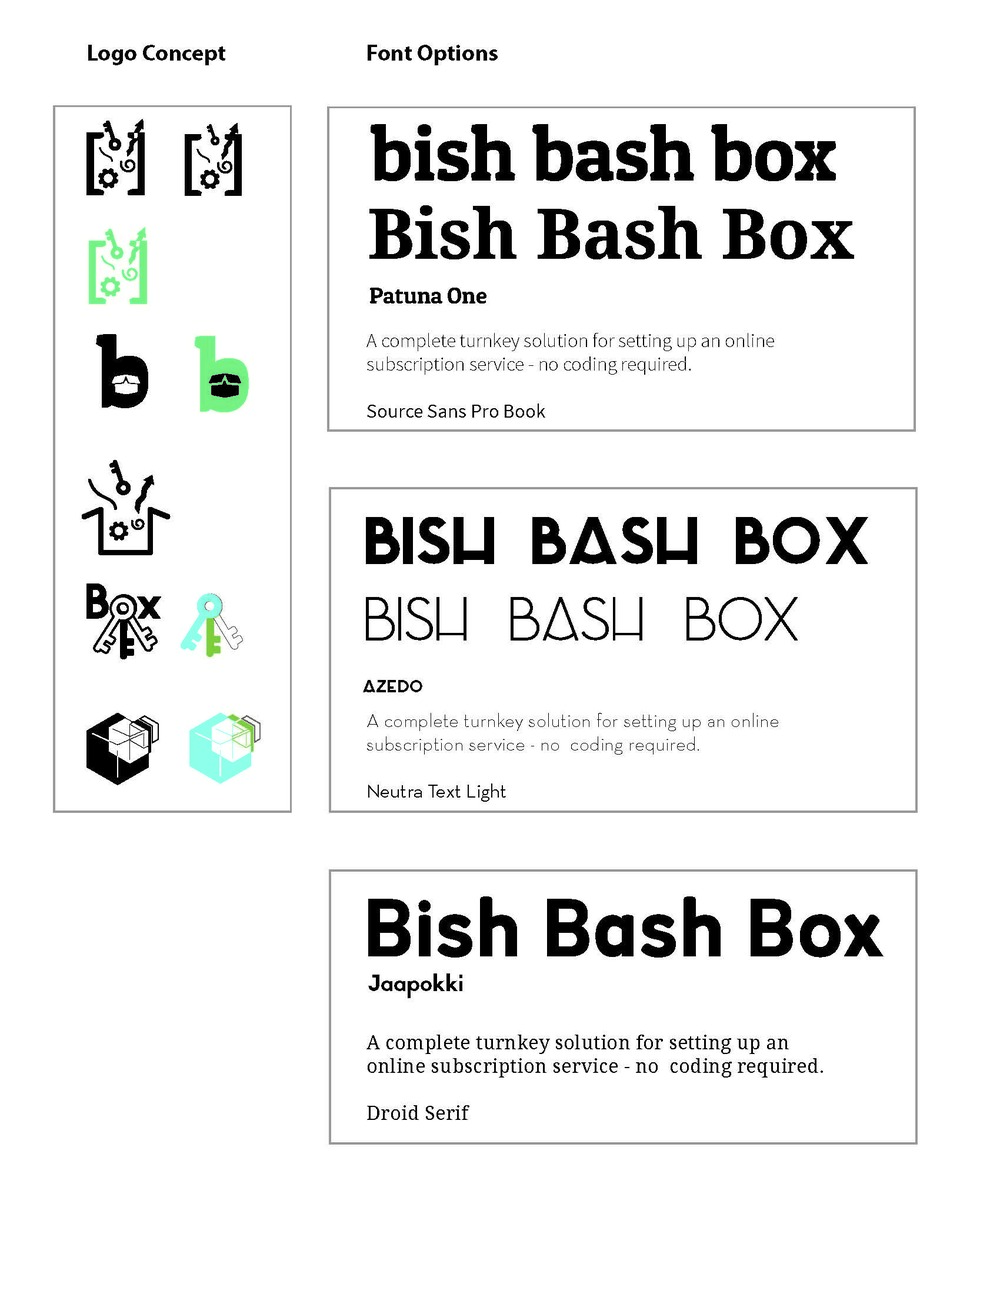 Bish Bash Box Logo & Color Development